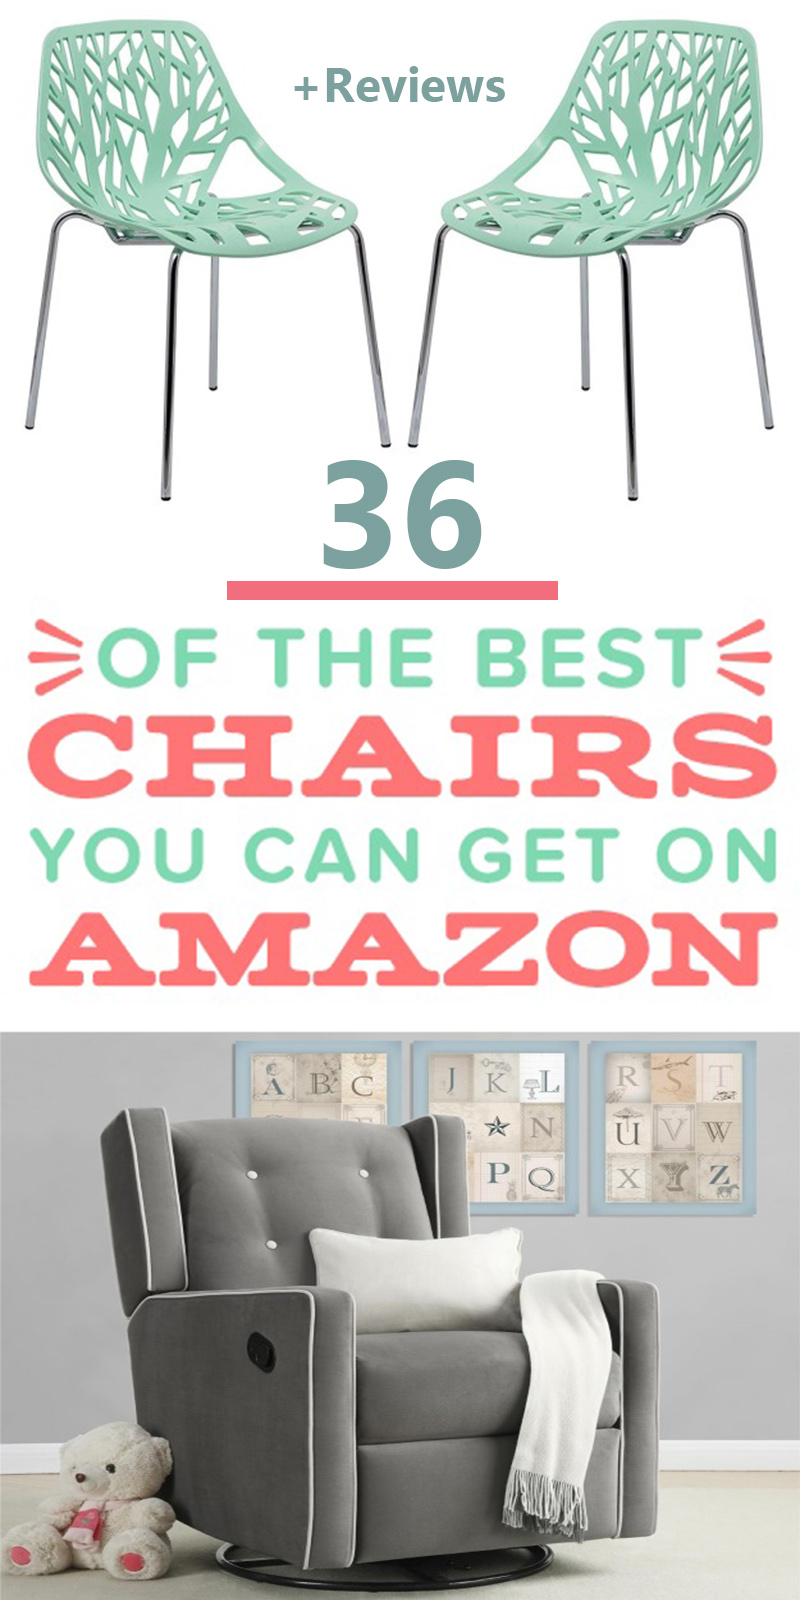 36 OF THE BEST CHAIRS YOU CAN GET ON AMAZON REVIEWS - 36 OF THE BEST CHAIRS YOU CAN GET ON AMAZON + REVIEWS